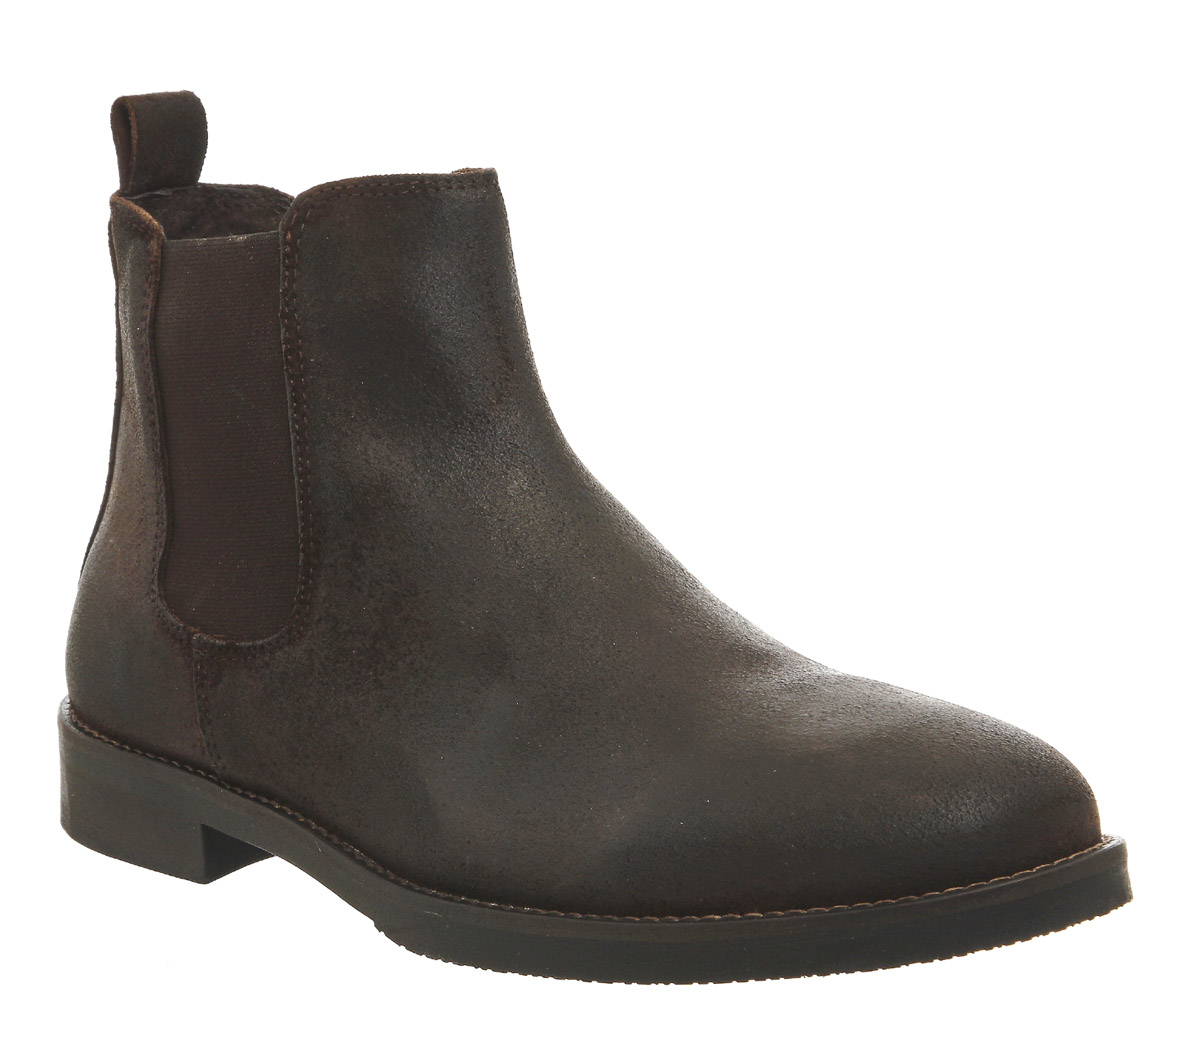 office cage chelsea boots in brown for men lyst. Black Bedroom Furniture Sets. Home Design Ideas